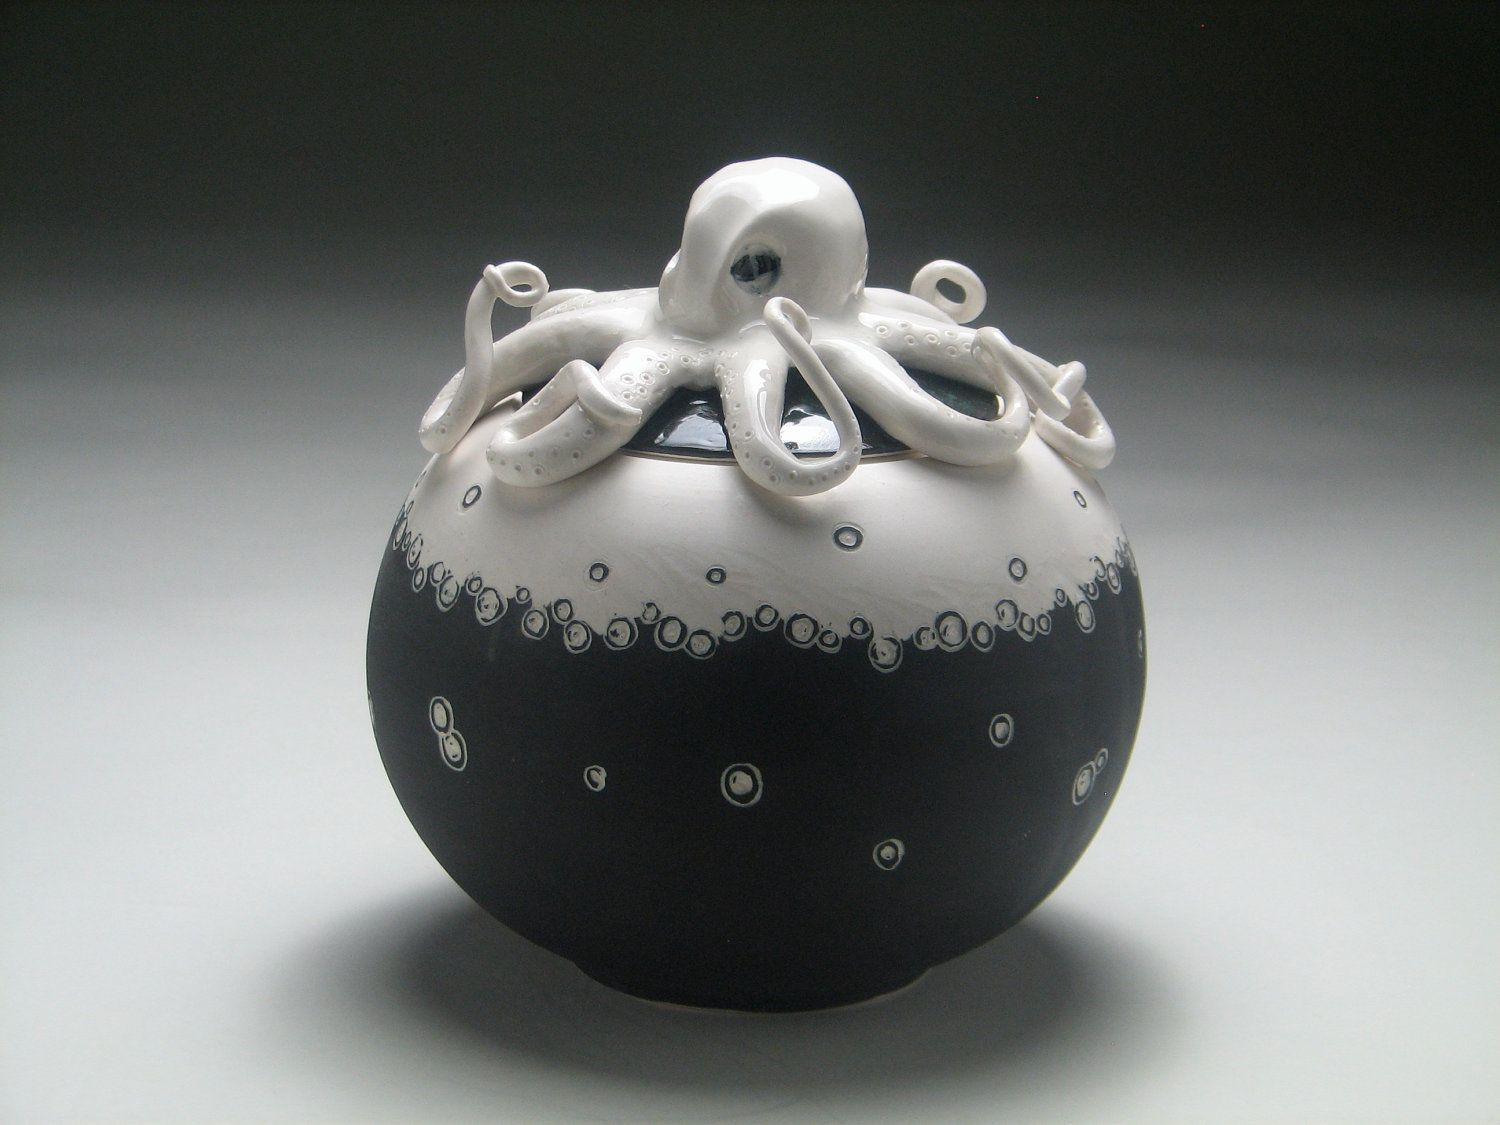 Ceramic Octopus Octopus Jar 95 00 Via Etsy Etsy Finds Pinterest